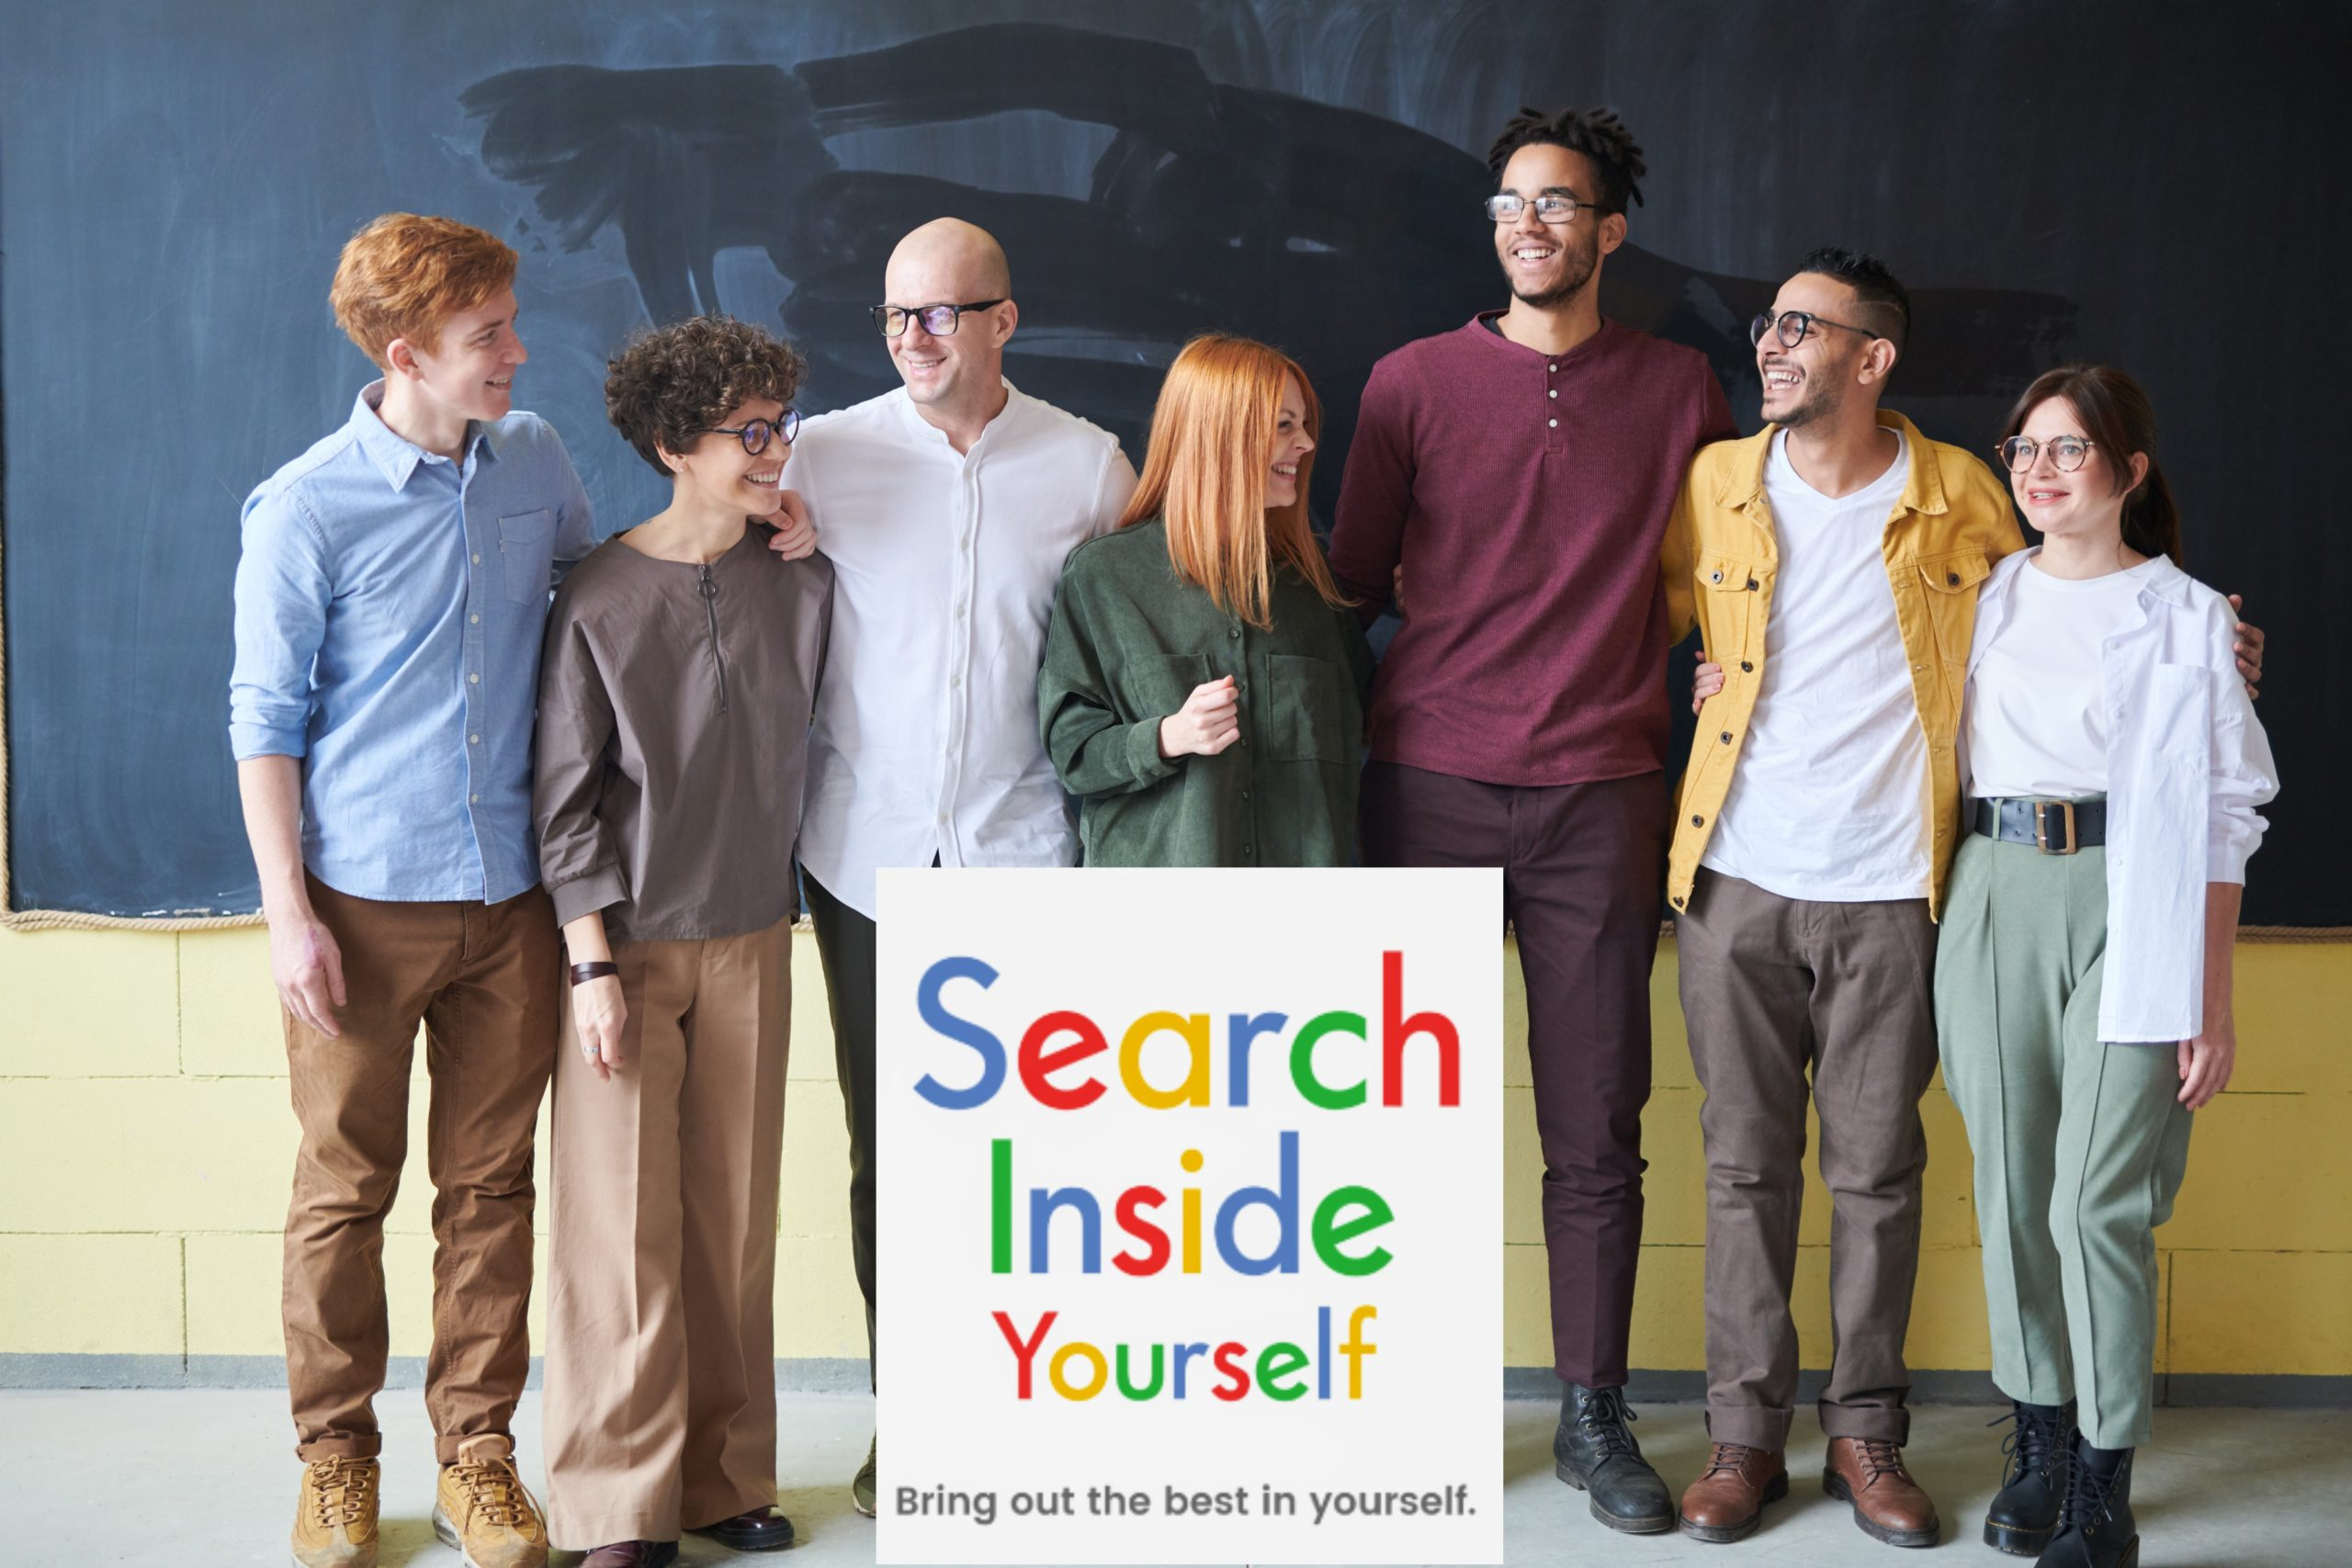 Search inside yourself education